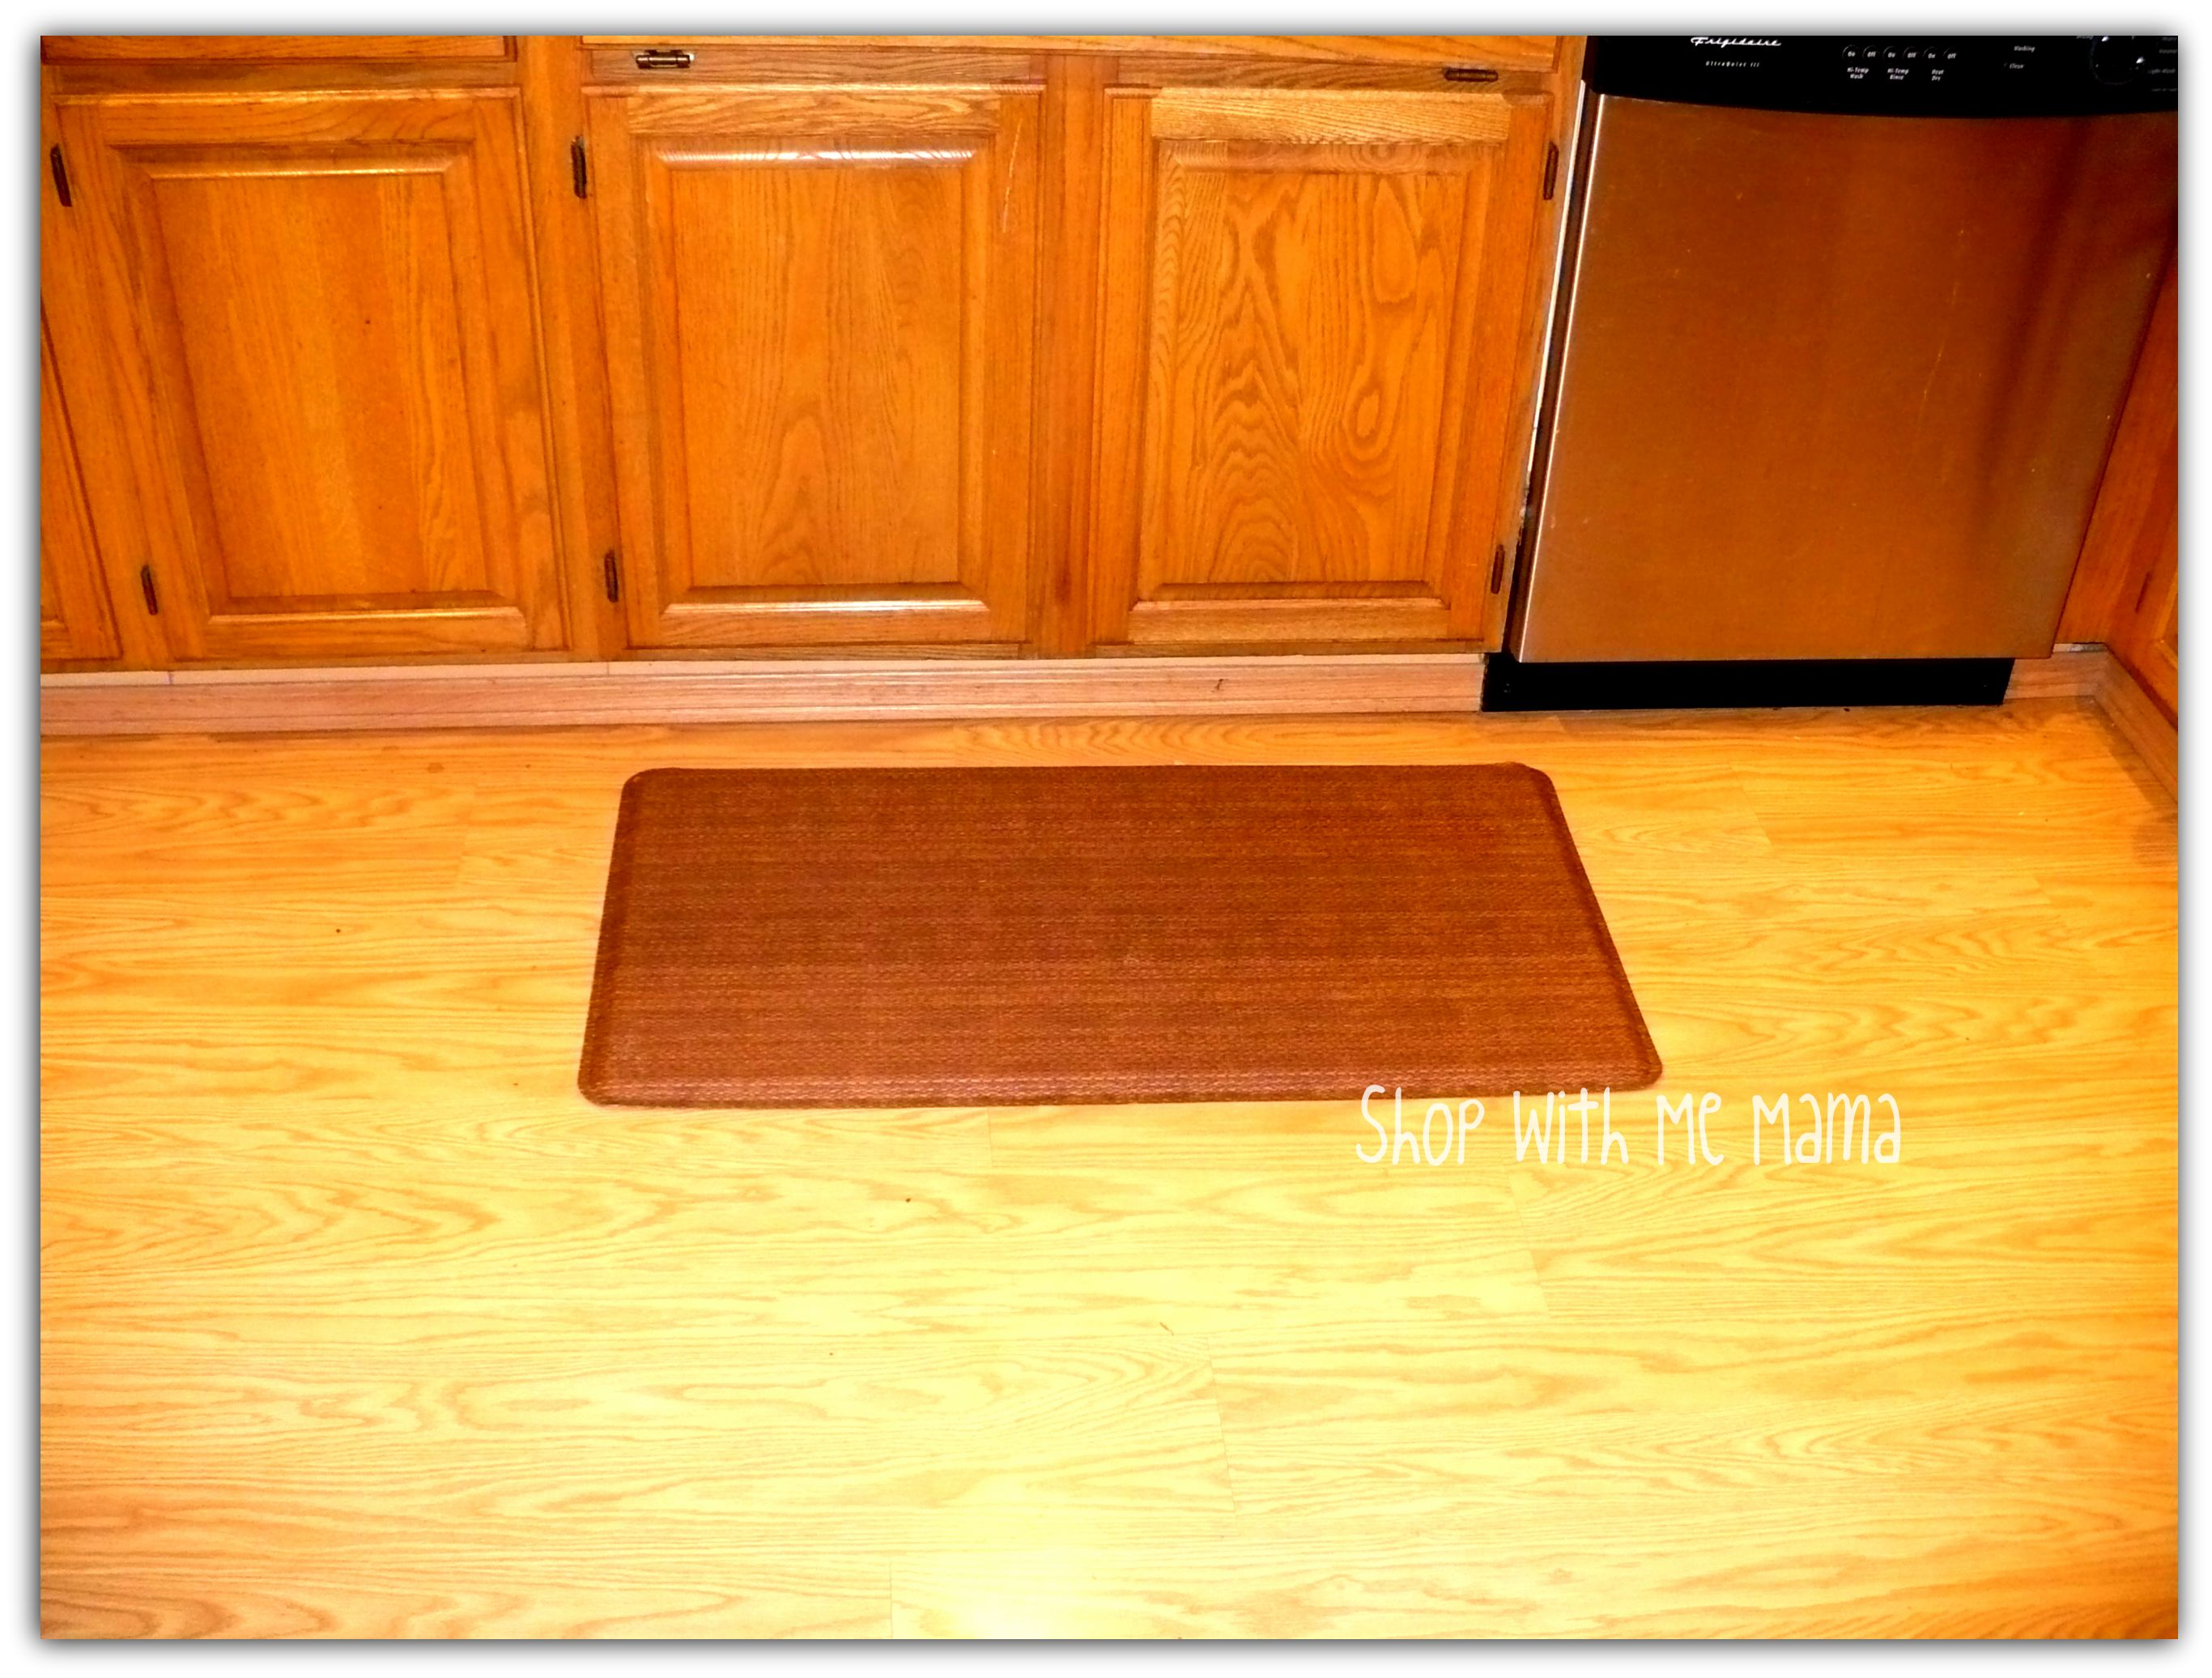 Kitchen Gel Floor Mats Gelpro Mat Review Shop With Me Mama